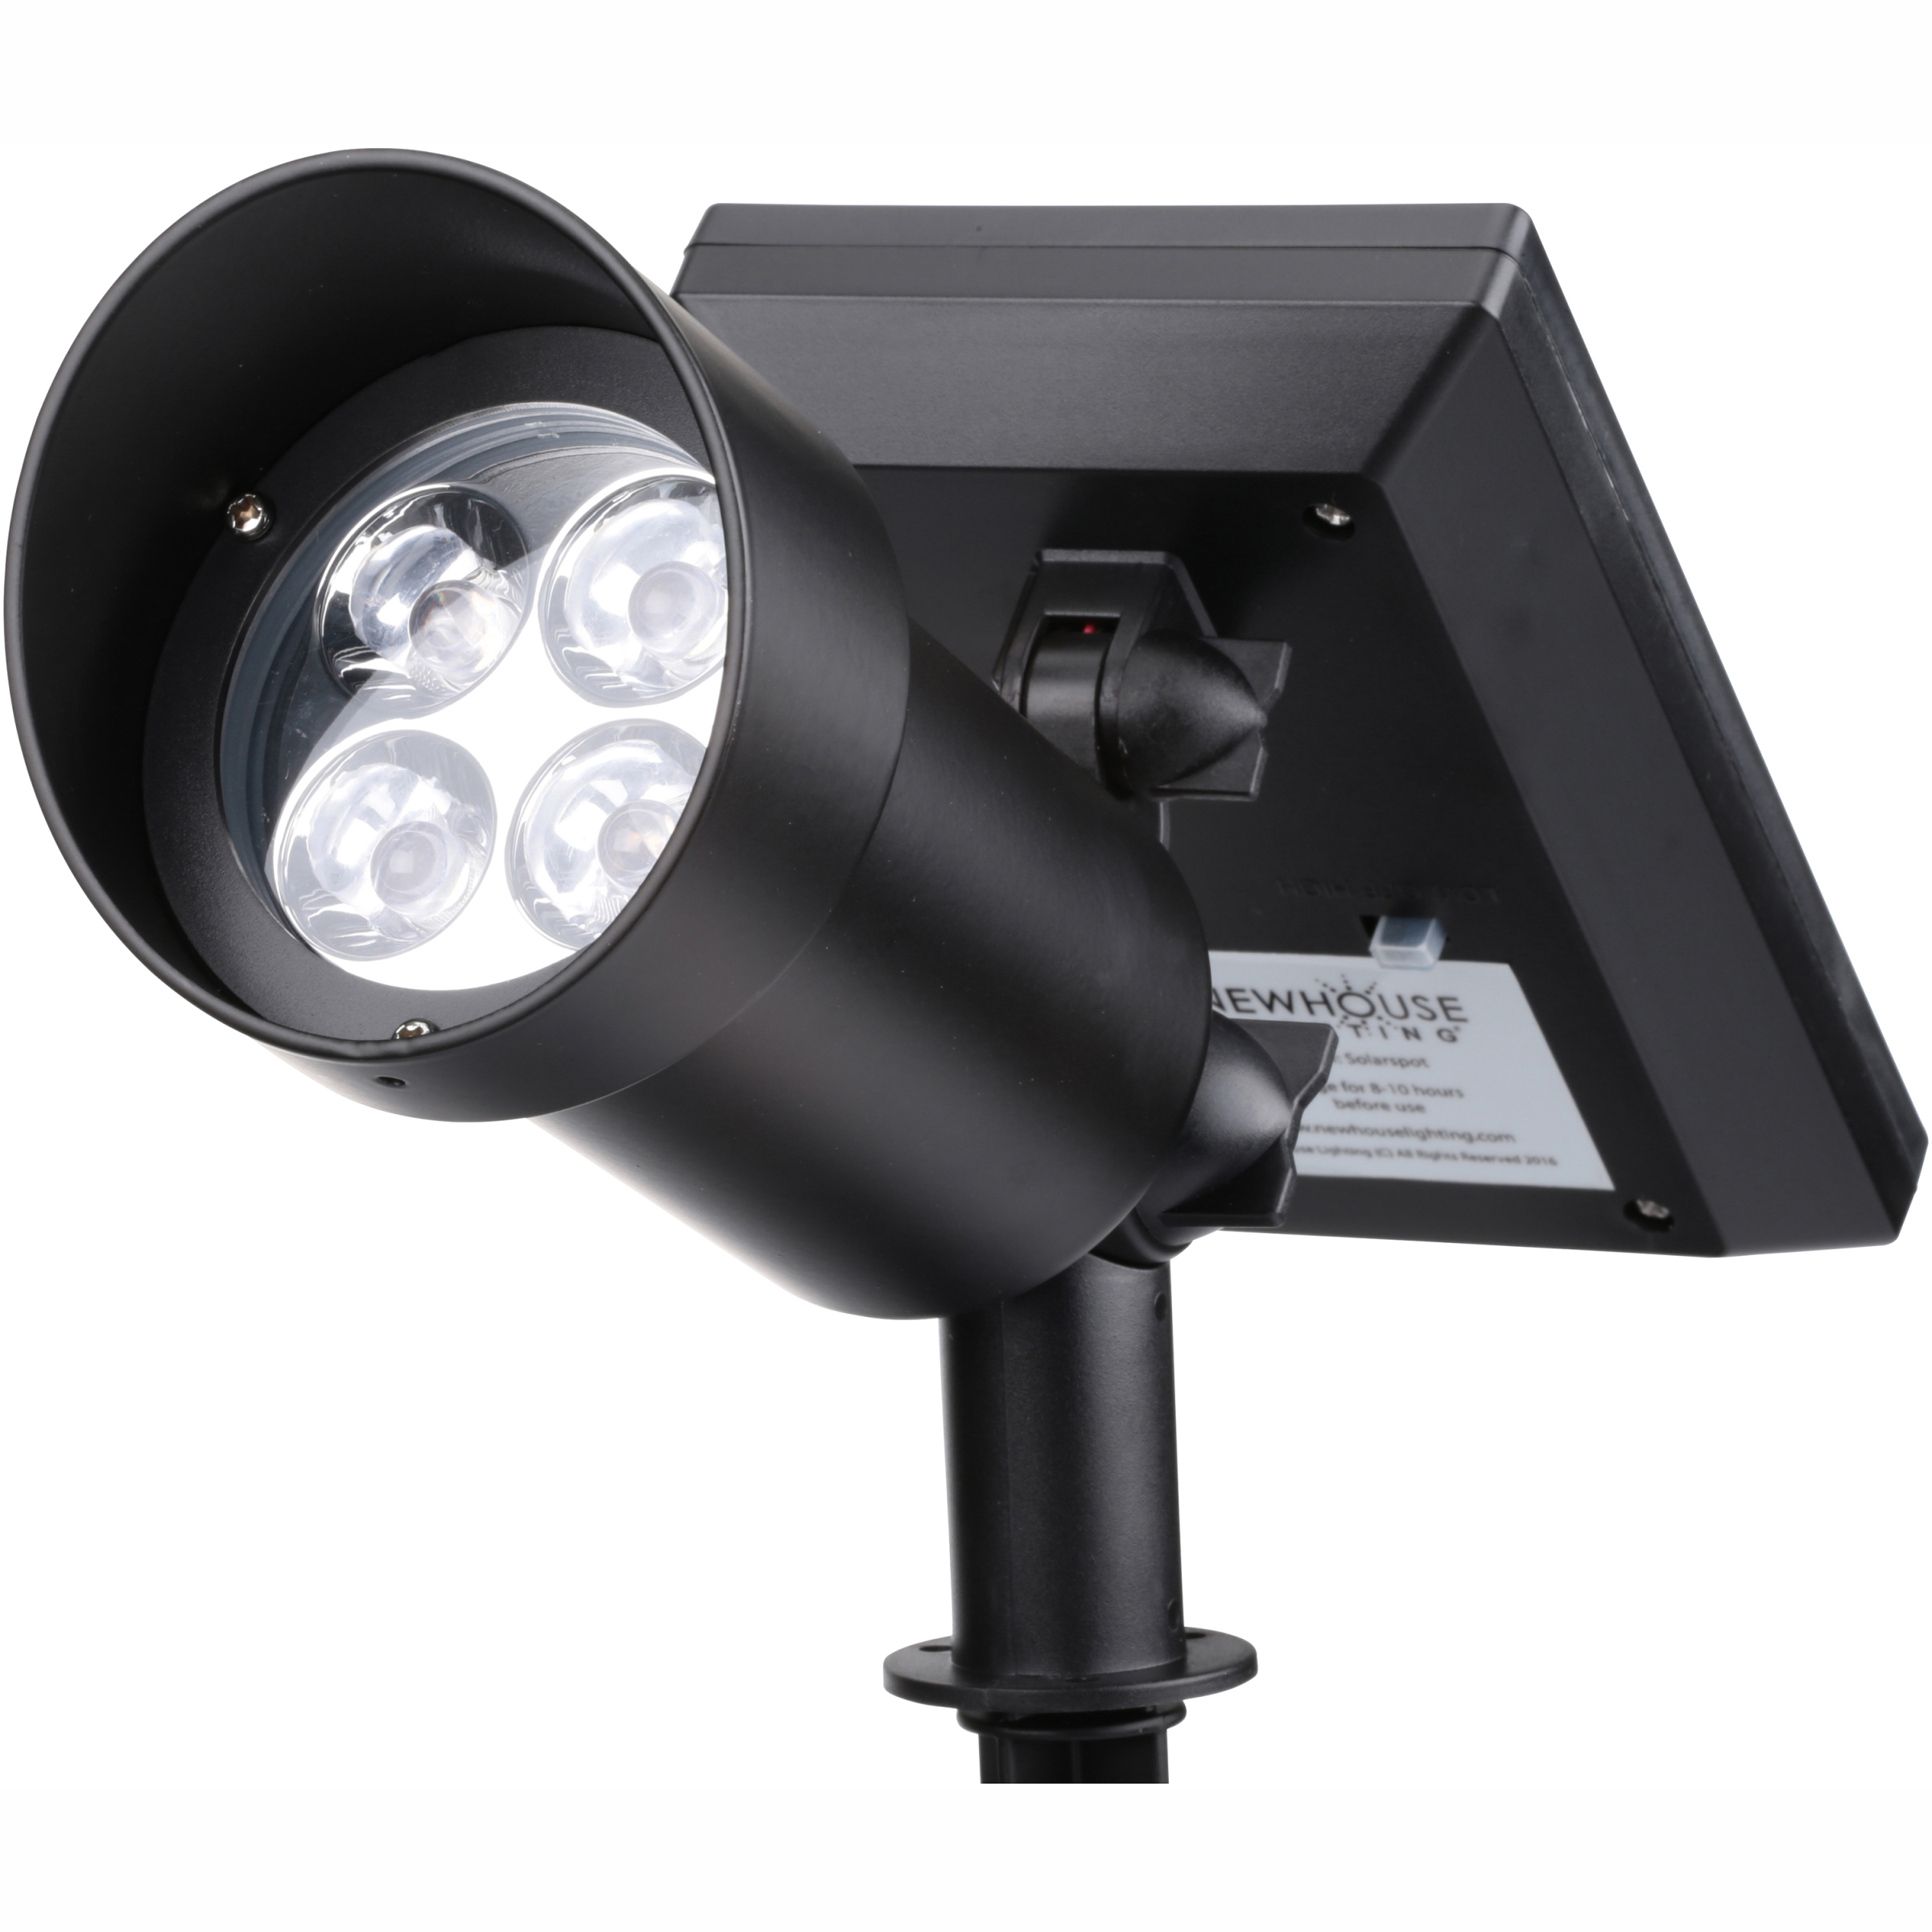 Newhouse Lighting Led Hi-Power Solar Spotlight Light by Newhouse Lighting